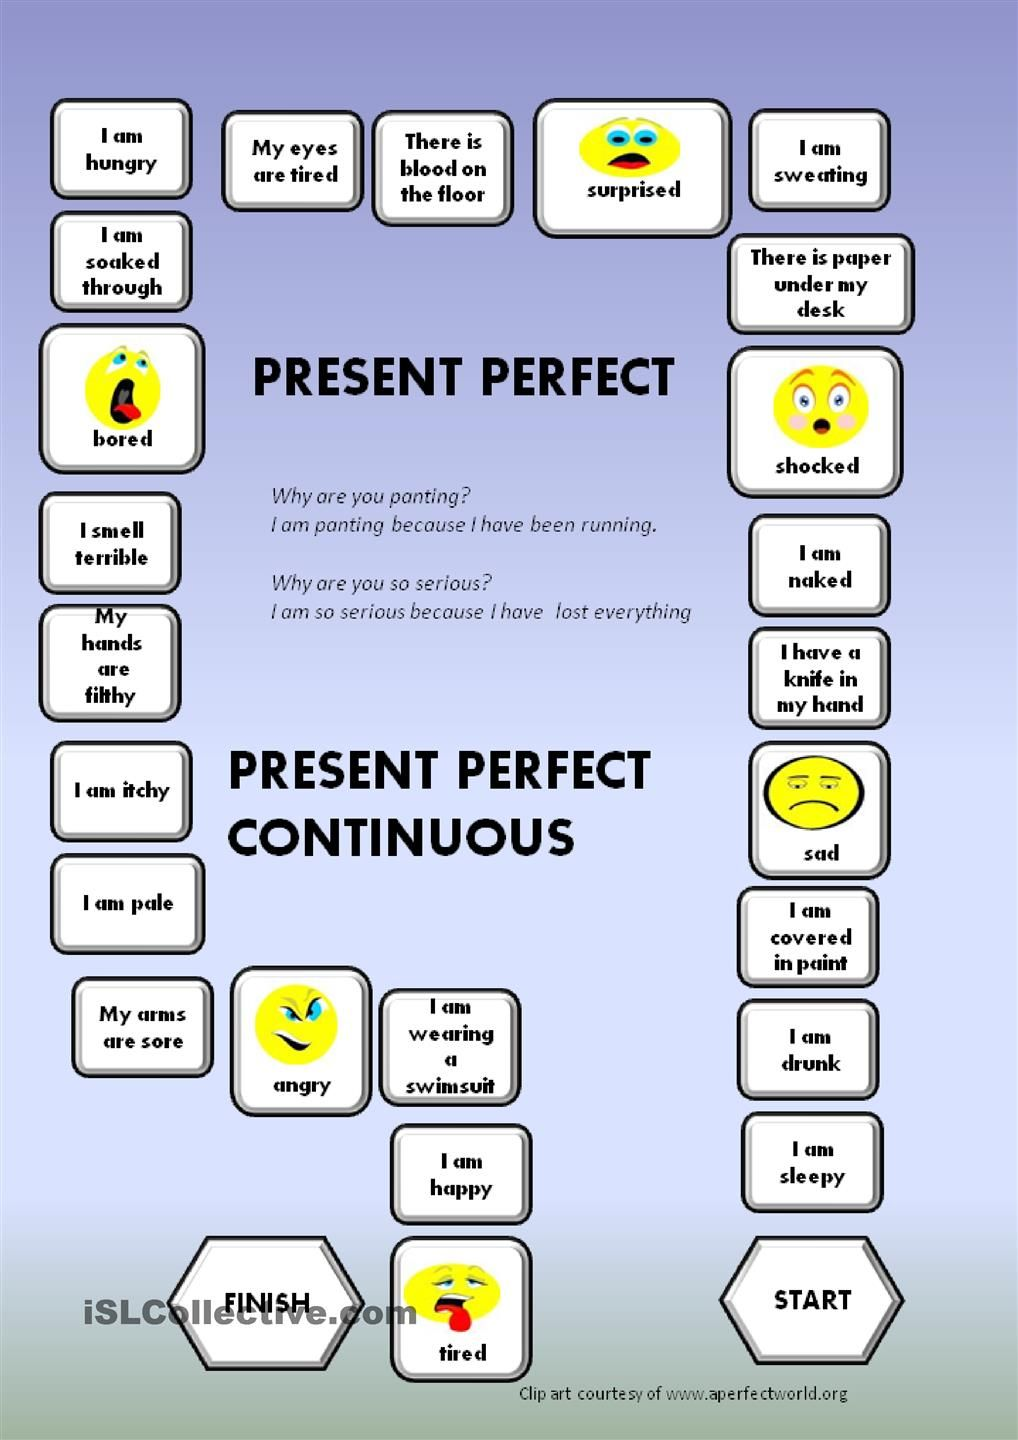 Present Perfect Present Perfect Continuous A Boardgame Present Perfect Board Games Perfection